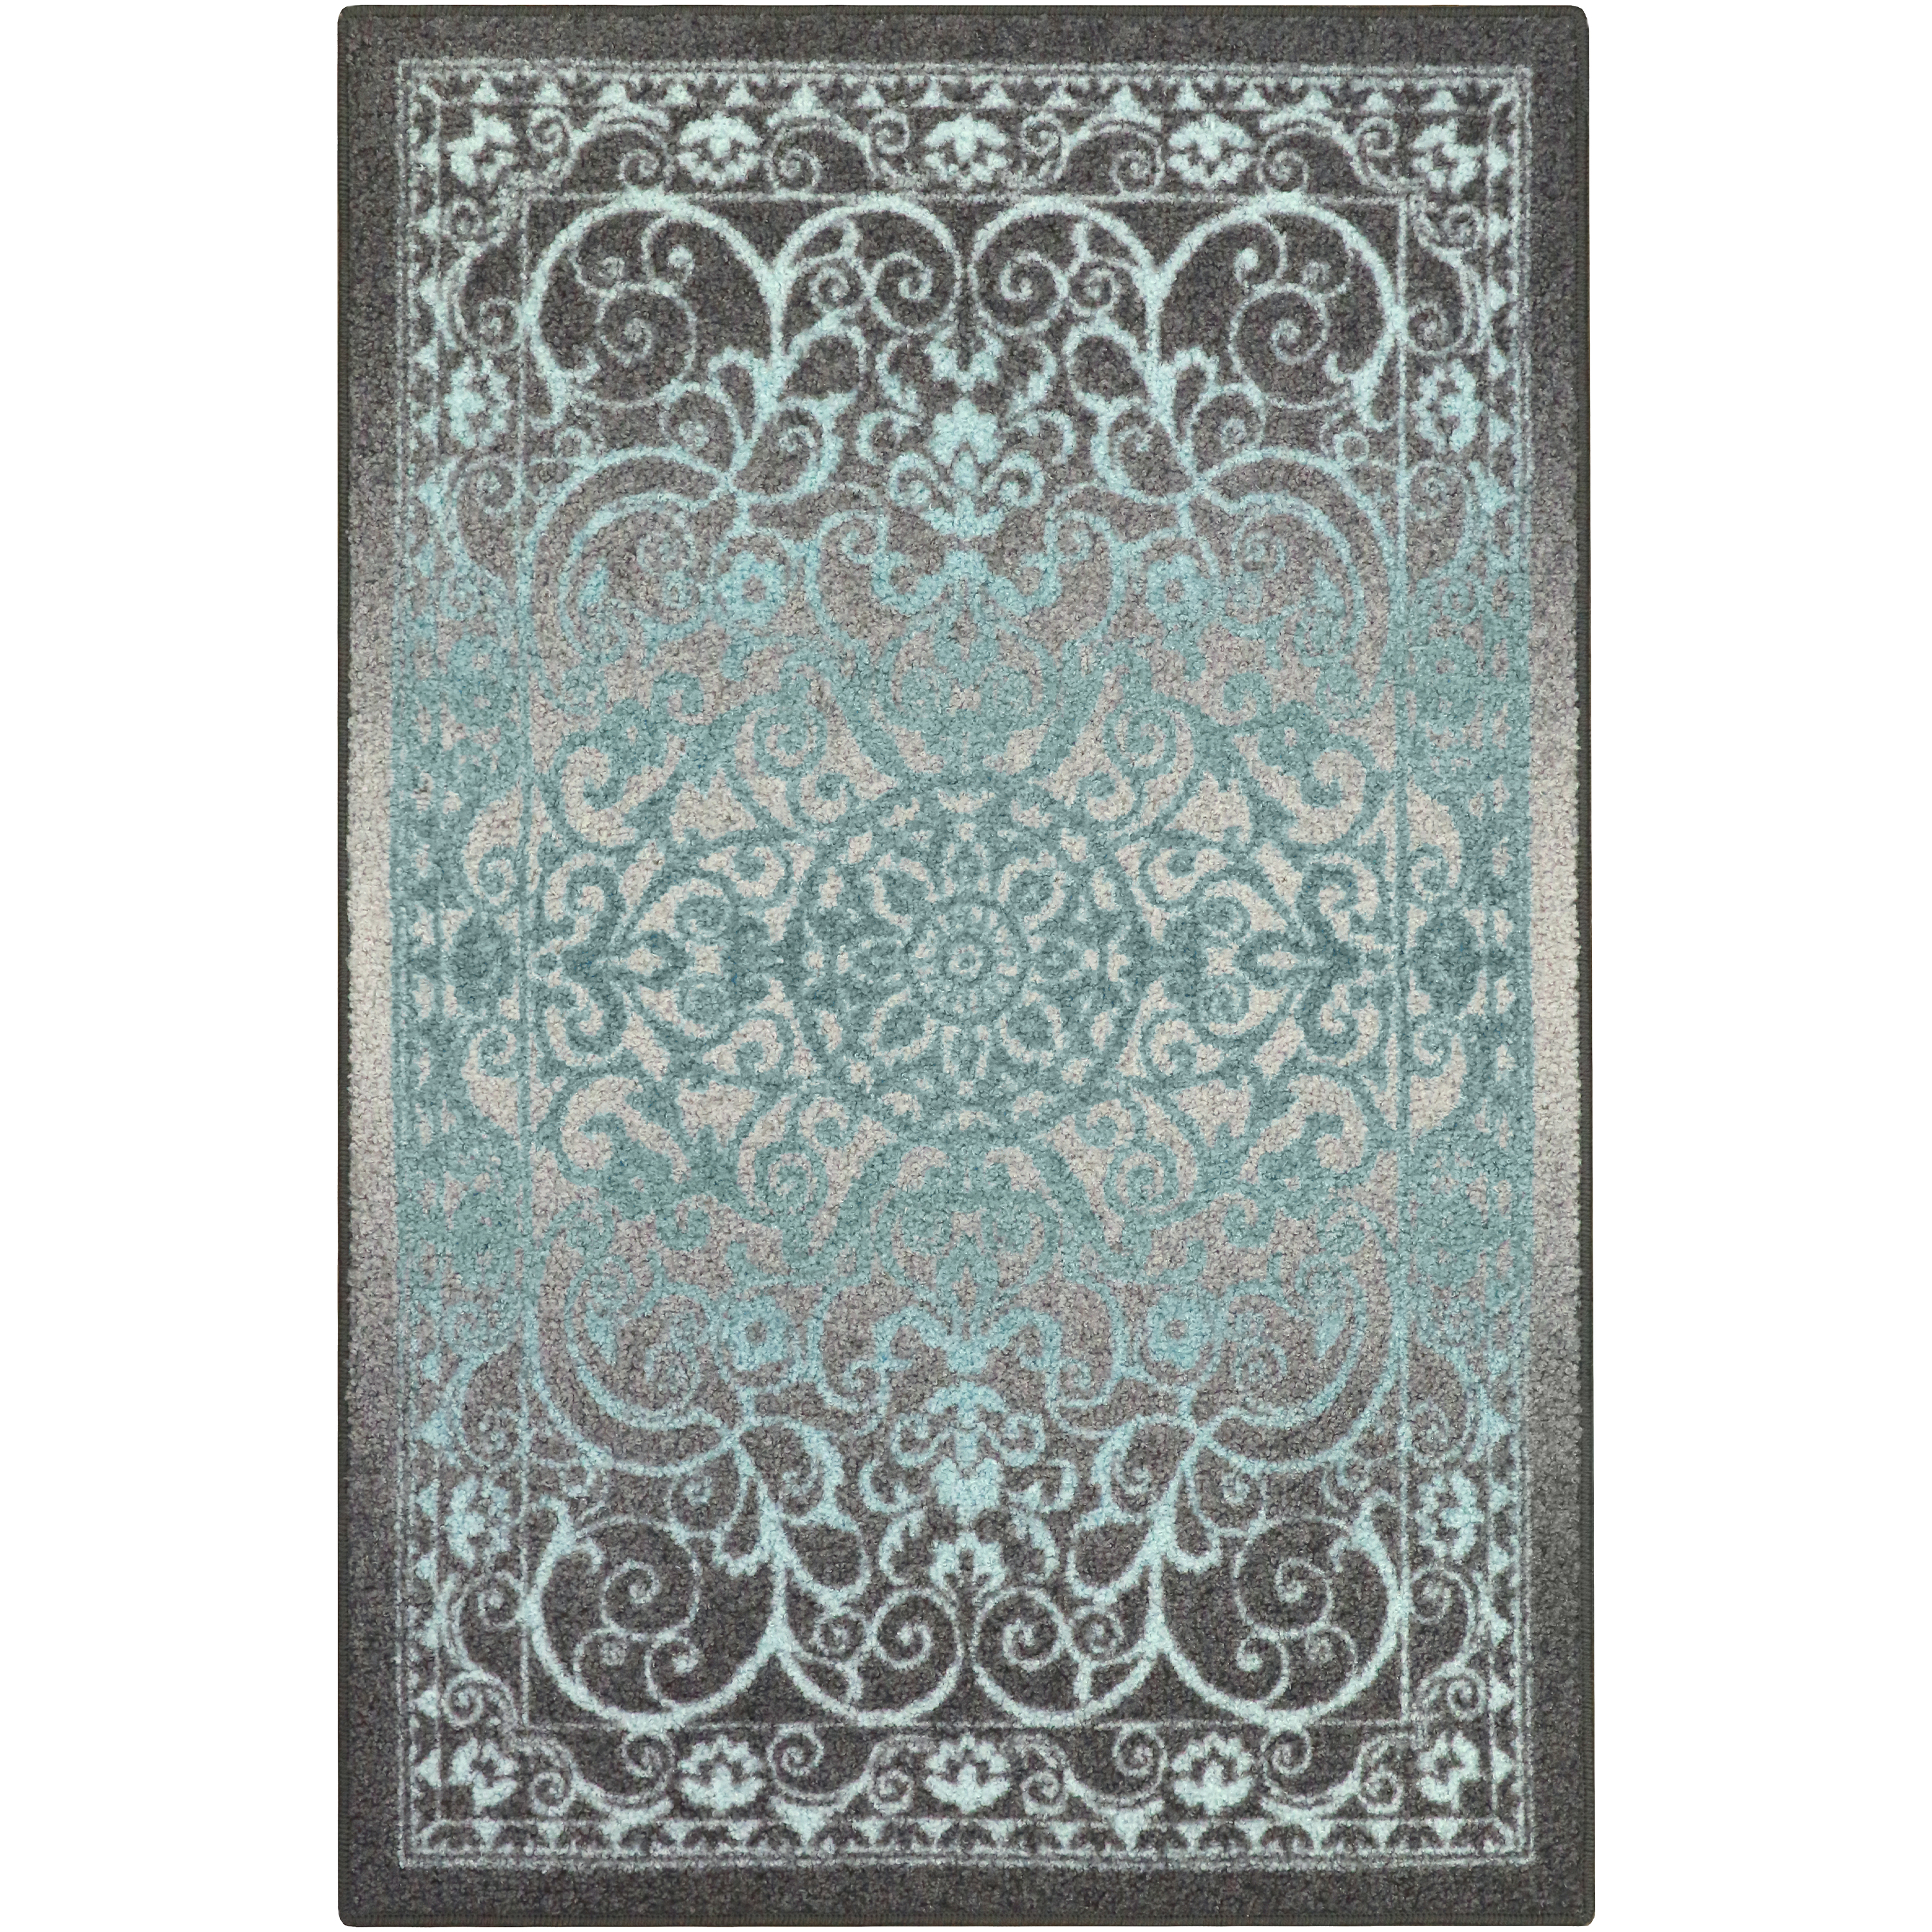 Mainstays India Medallion Textured Print Area Rug and Runner Collection, Multiple Sizes and Colors